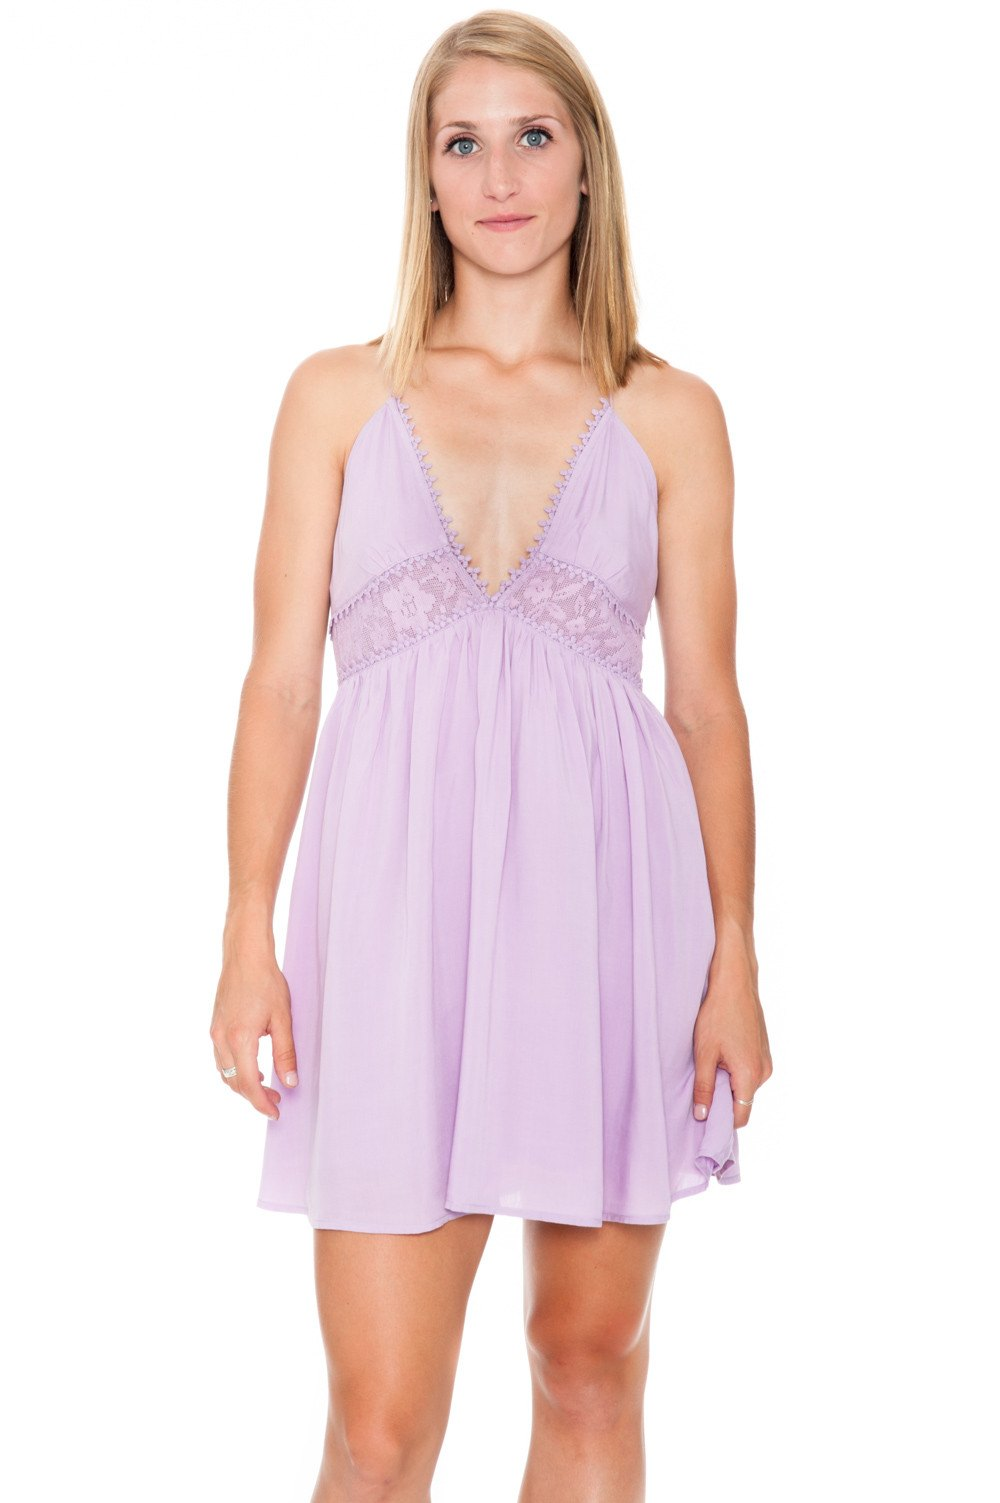 Dress - Lilac Boho Peek-a-Boo - 1